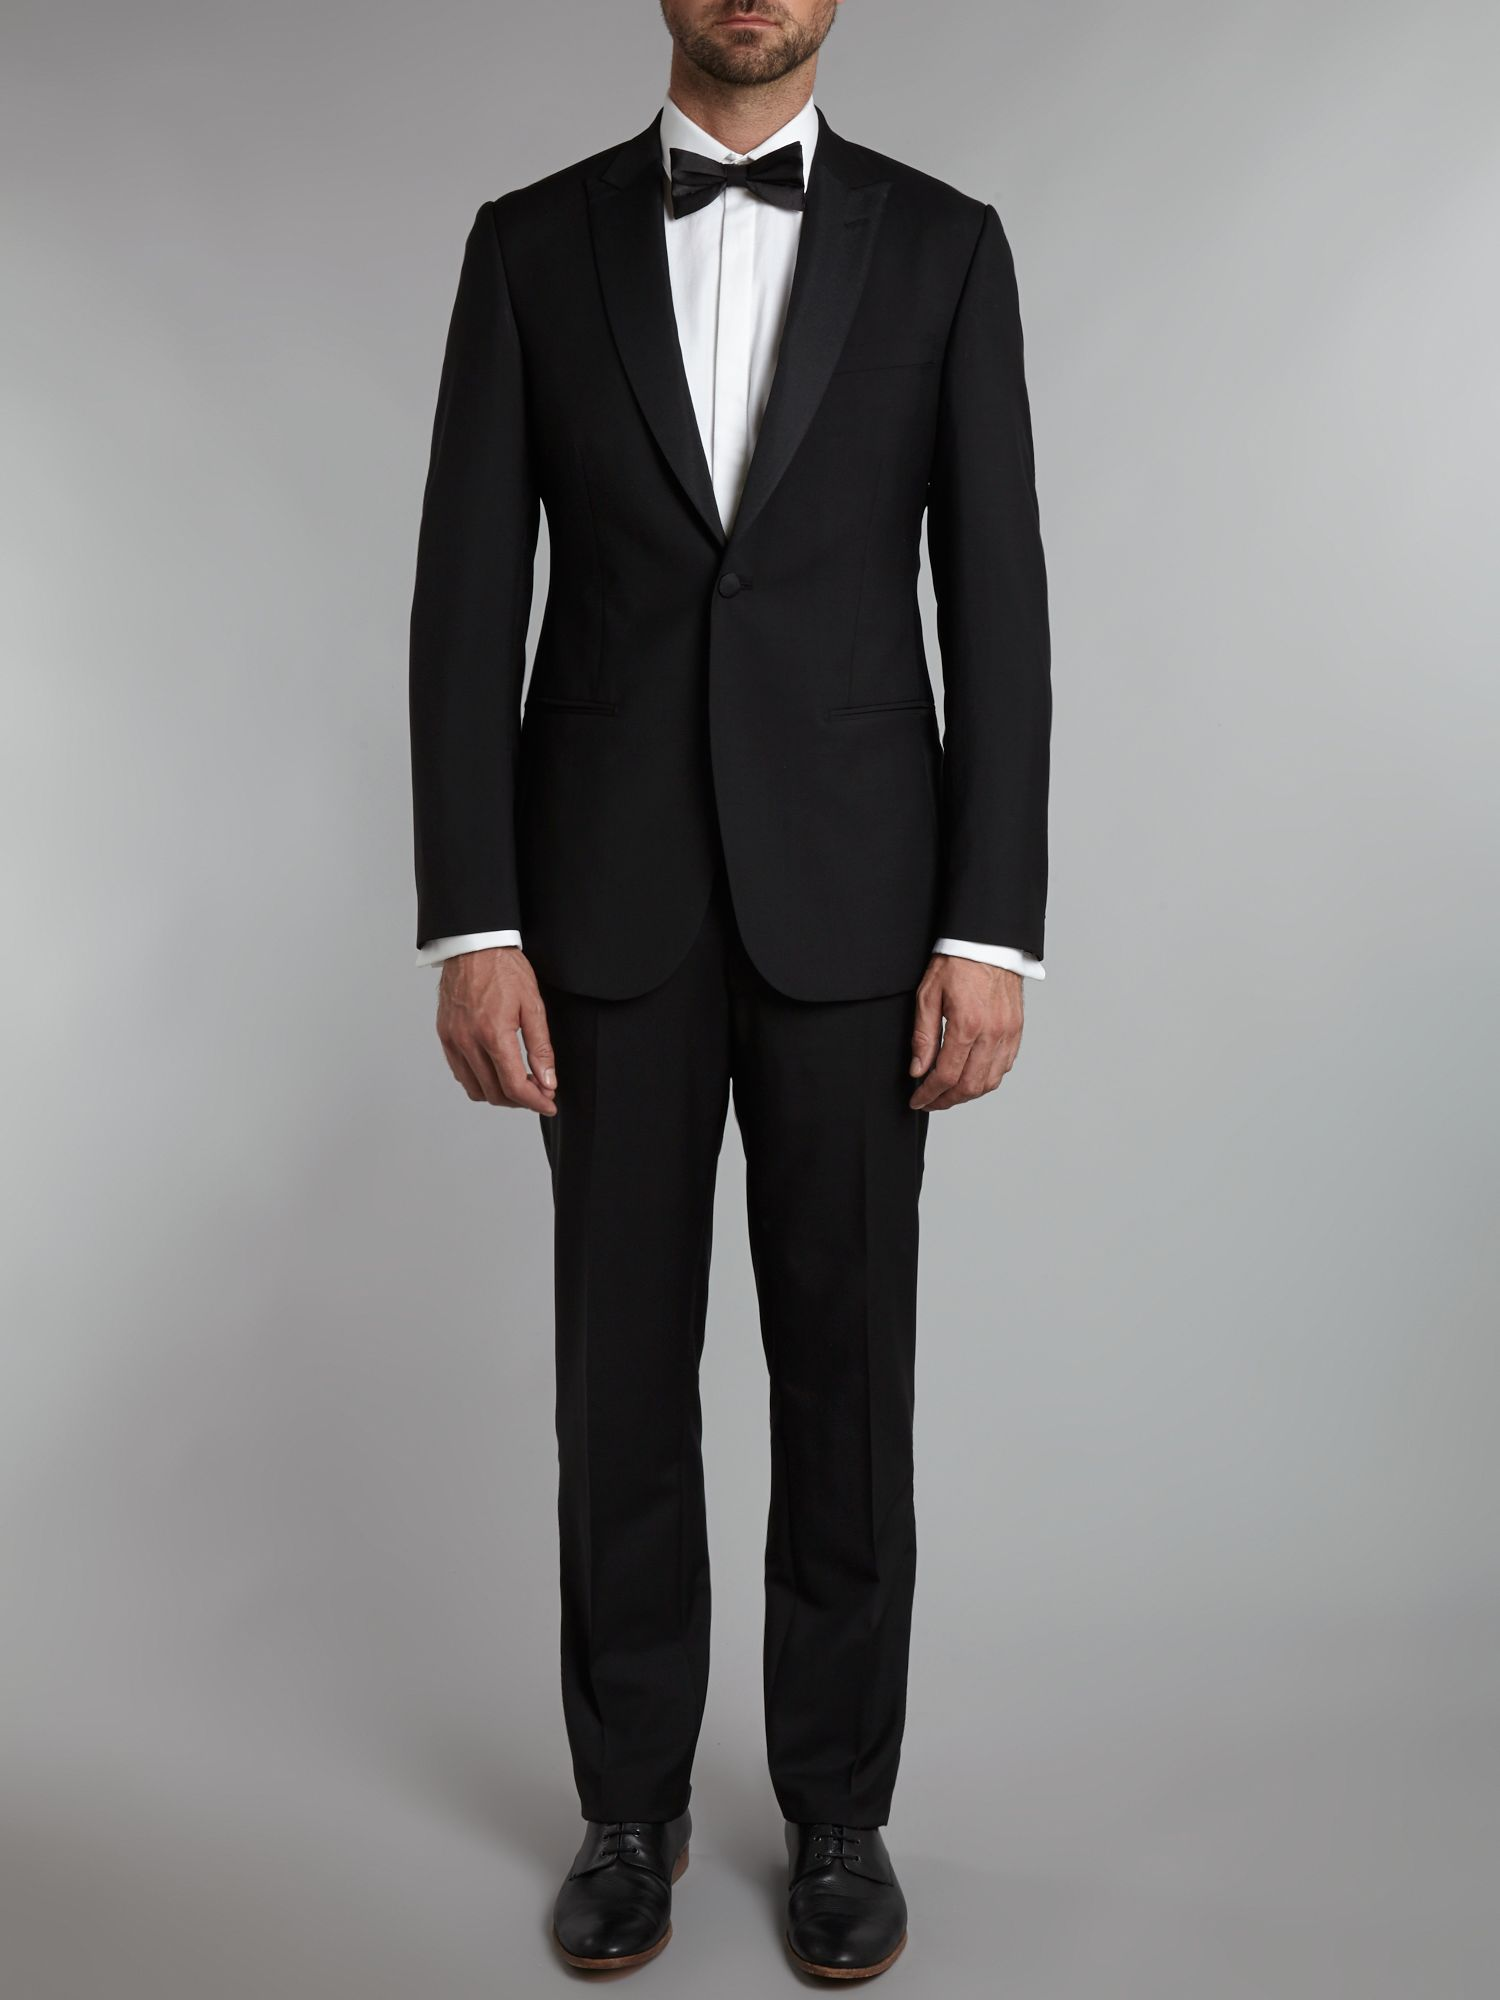 Slim fit tuxedo with peak lapels